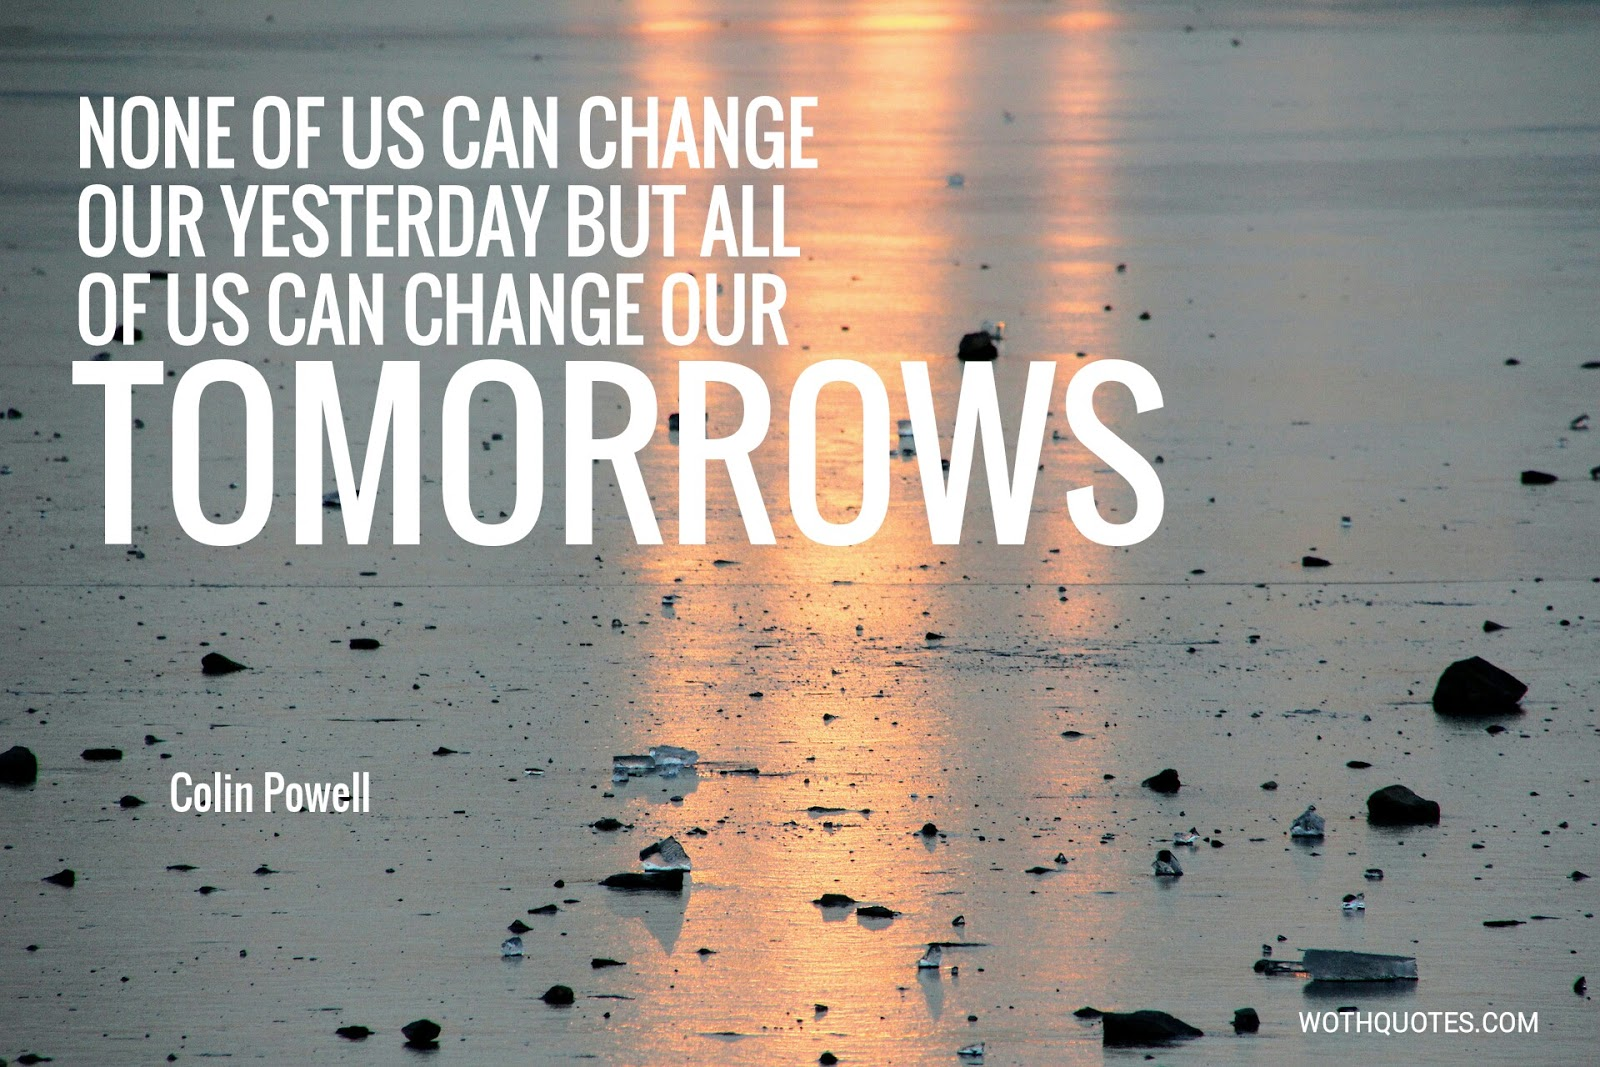 Have Faith In Tomorrow For It Can Bring Better Days: WOTHQUOTES COLLECTION